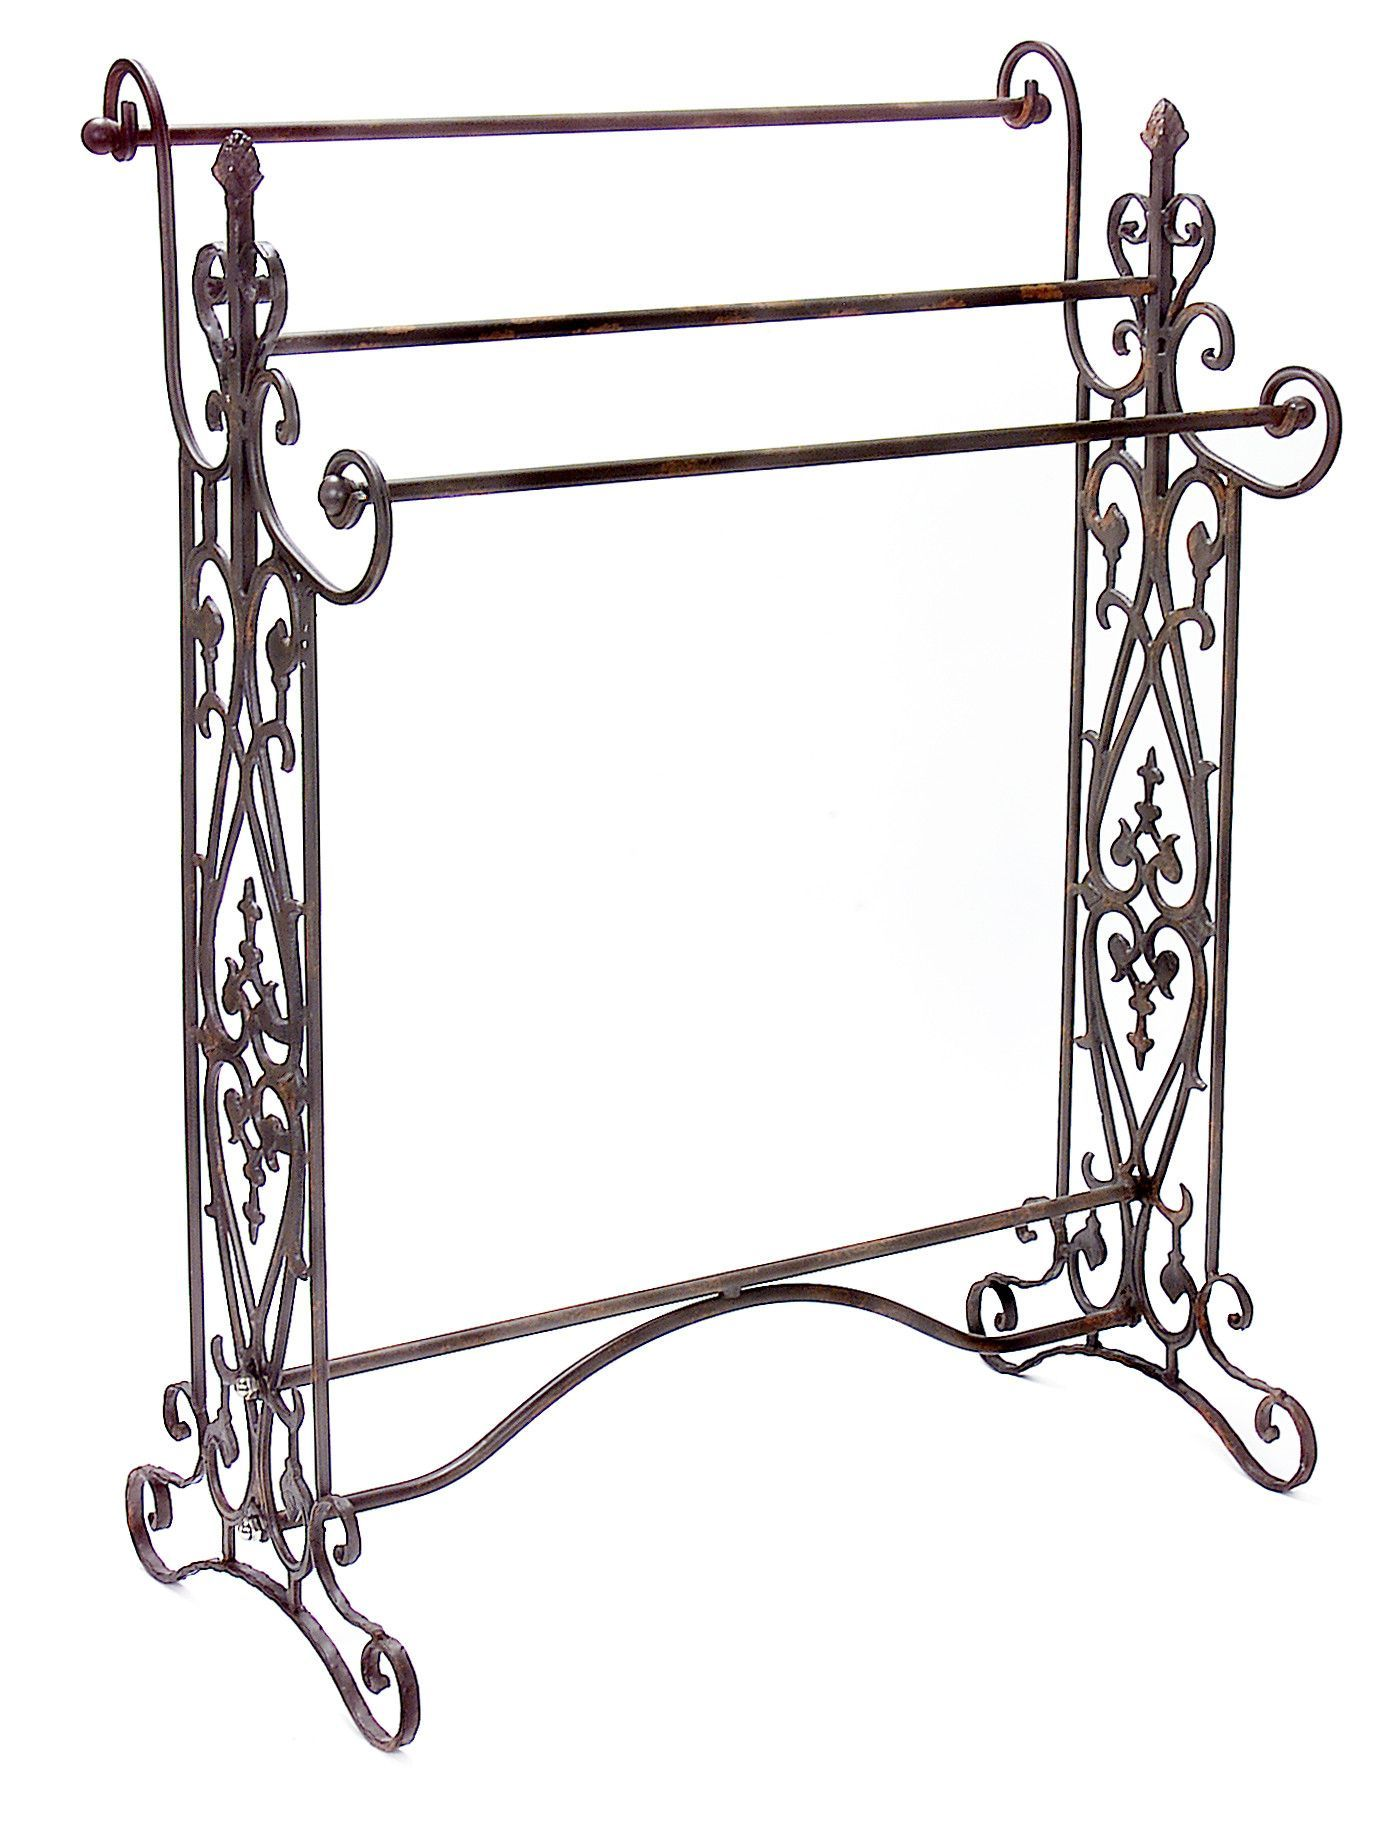 Traditional Wrought Iron Quilt Or Towel Rack In A Dark Finish